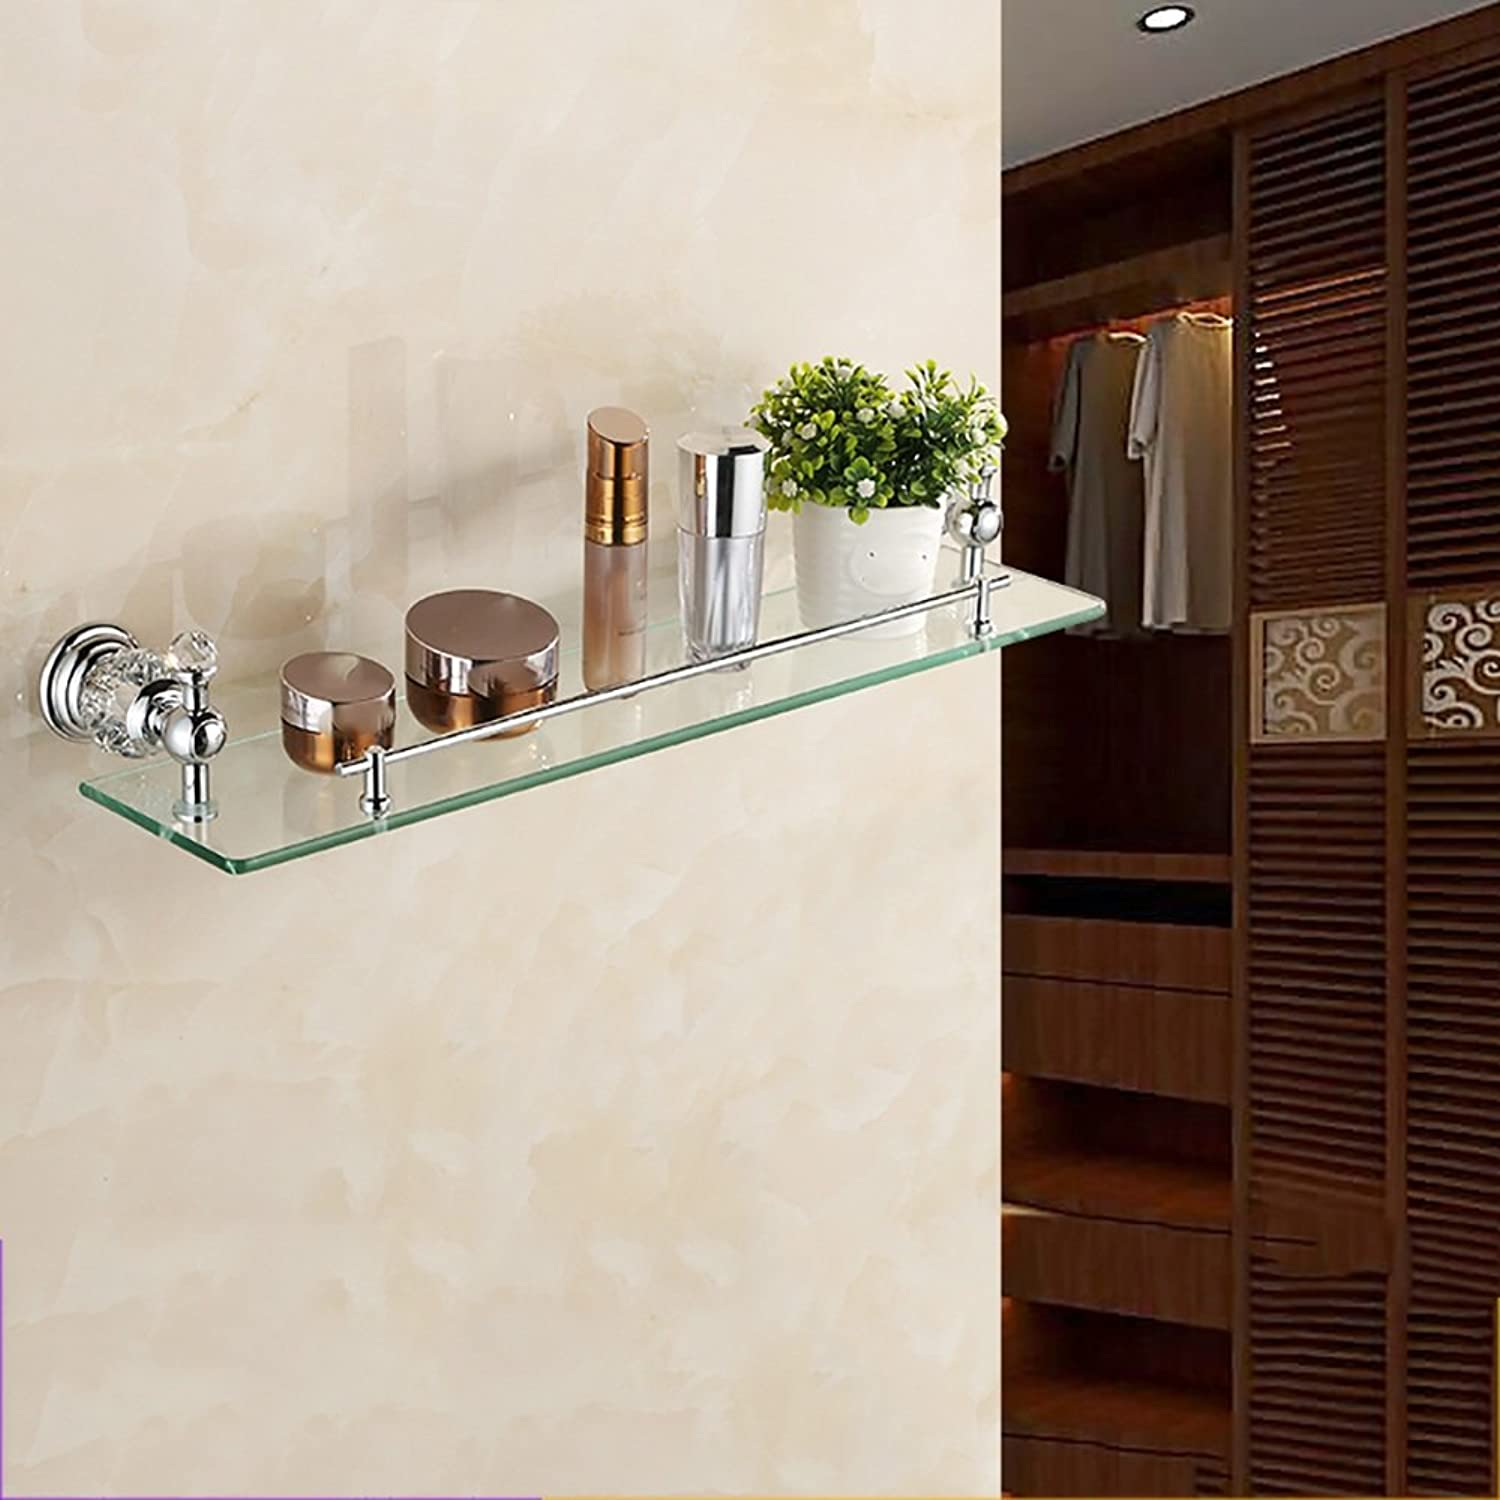 ZZHF yushizhiwujia Stainless Steel Single Layer Shelf European Bathroom Dresser Rack(3 colors Available) (color   A)